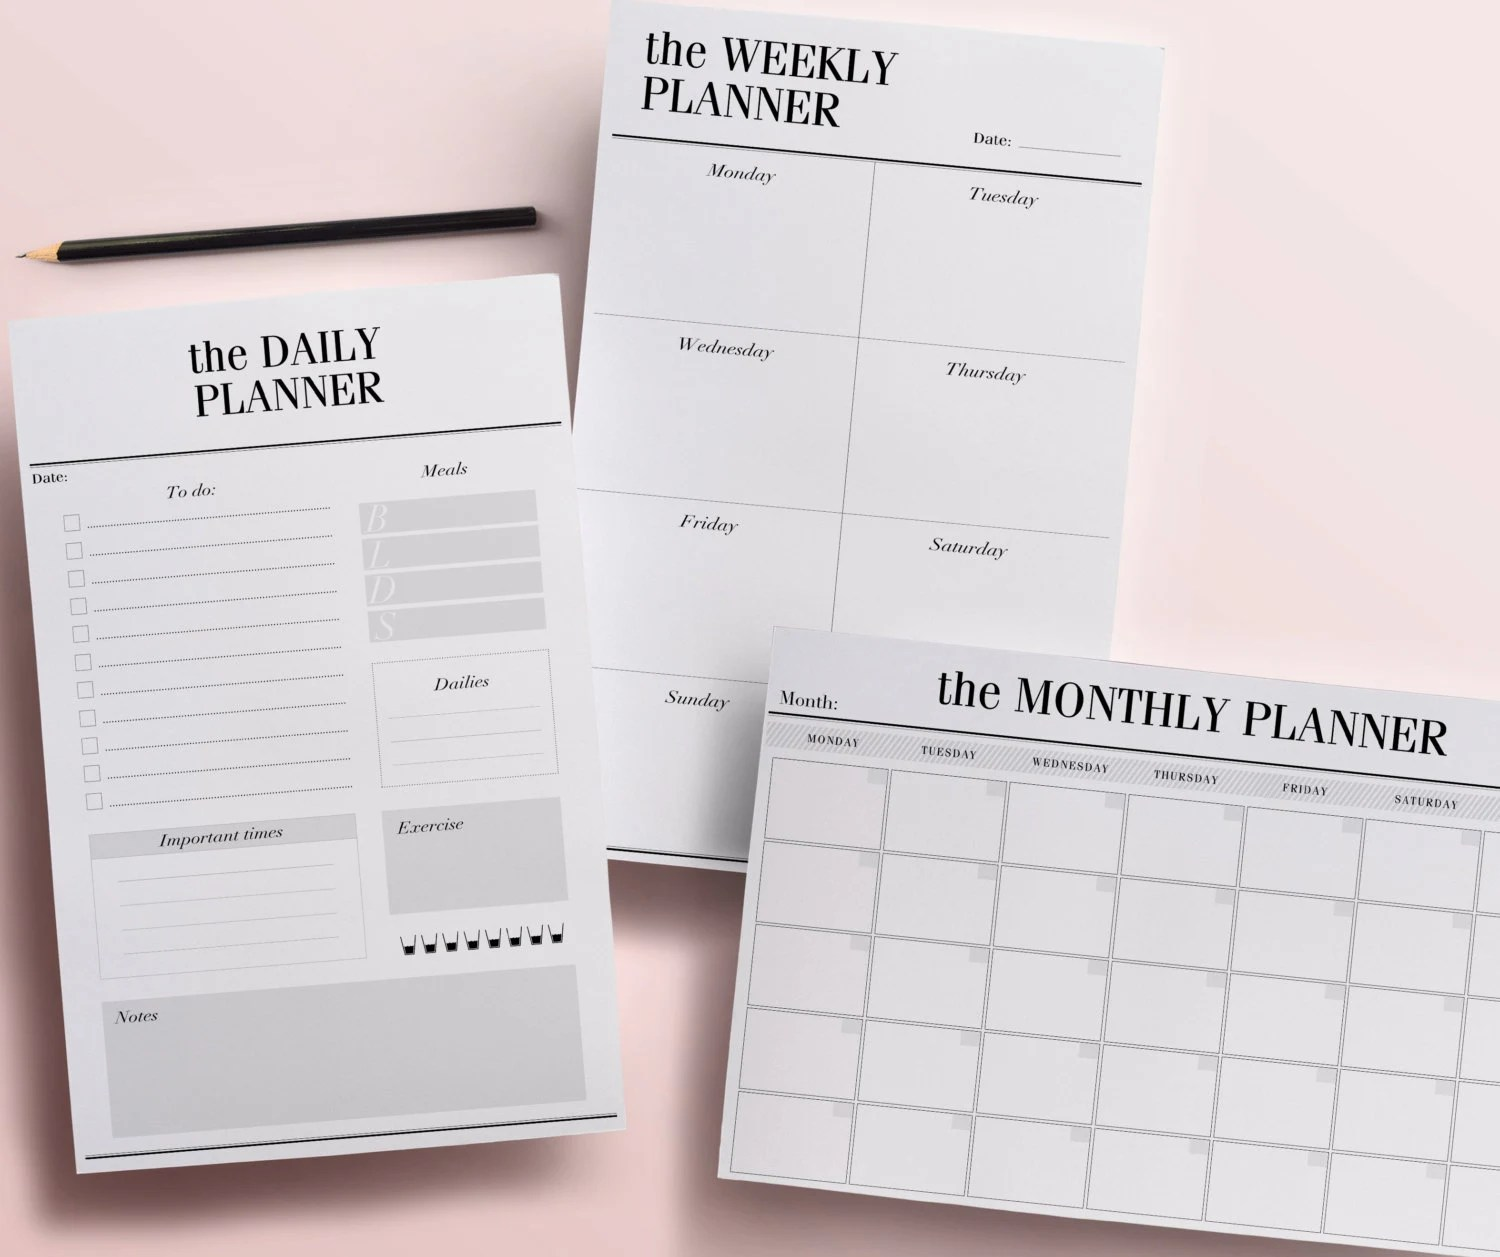 Printable Planner Pages Daily Weekly and Monthly Planners Etsy - daily monthly planners